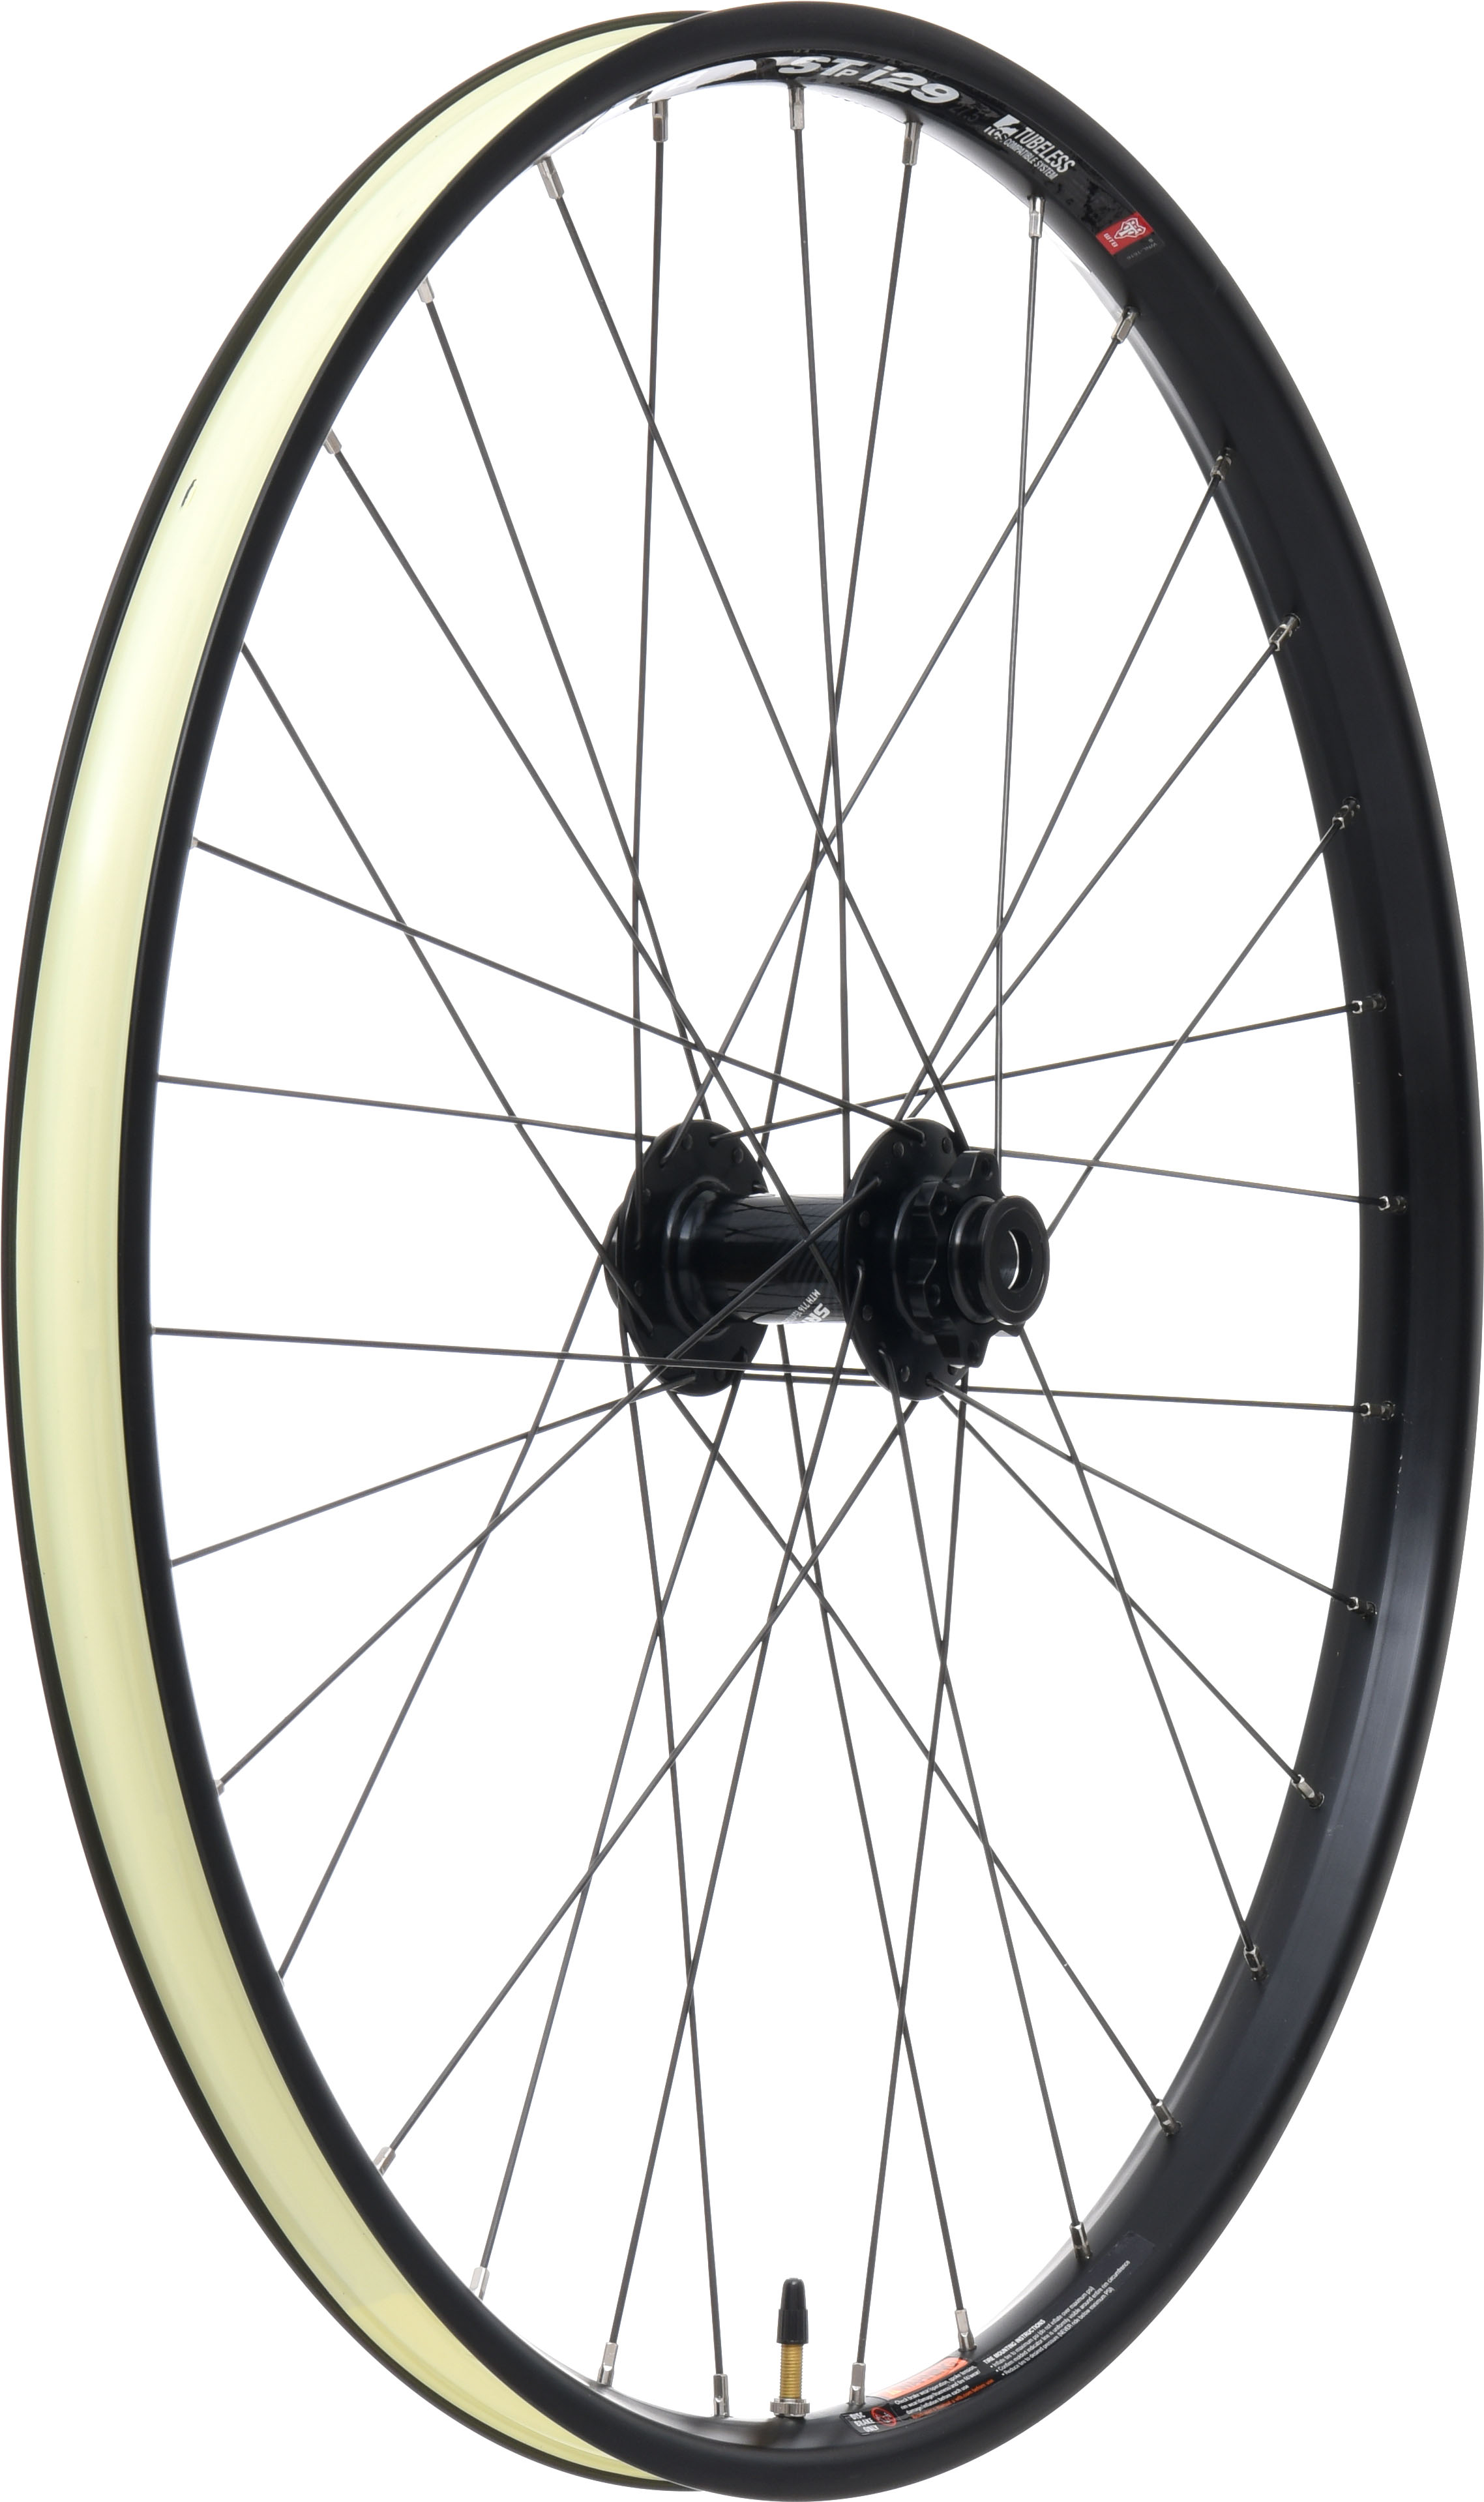 SRAM MTH 716 on WTB i19 Front Wheel | Front wheel